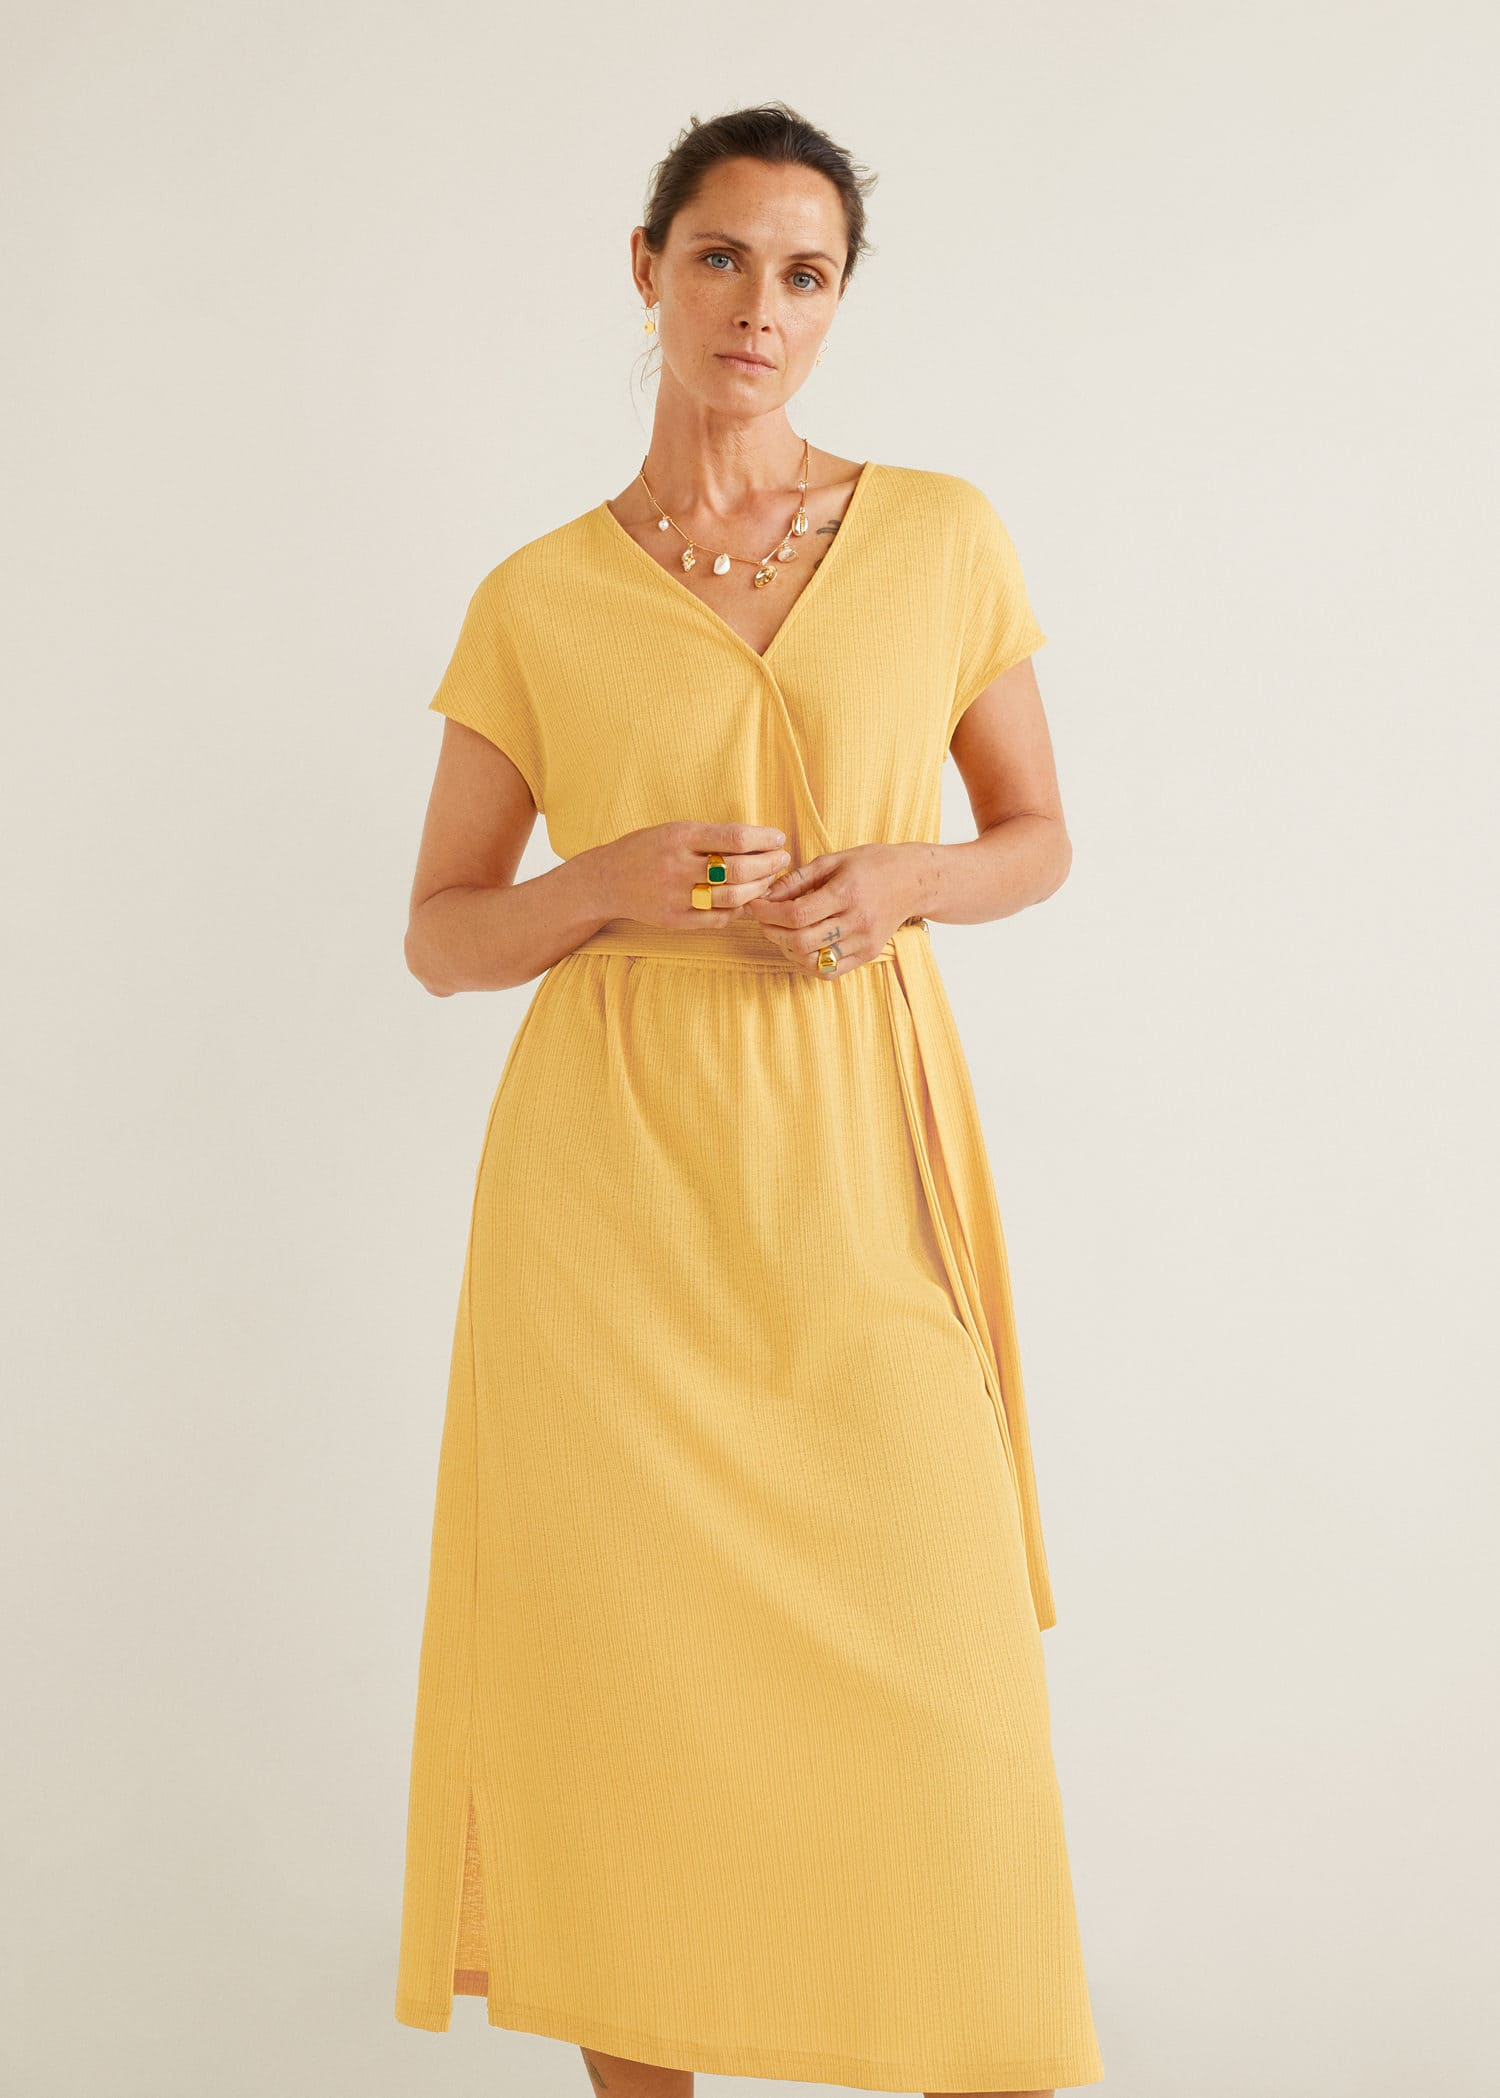 Macedonia Bow Textured Textured Dress Bow Macedonia WomanMango Dress WomanMango Textured Bow thBQdsCxro